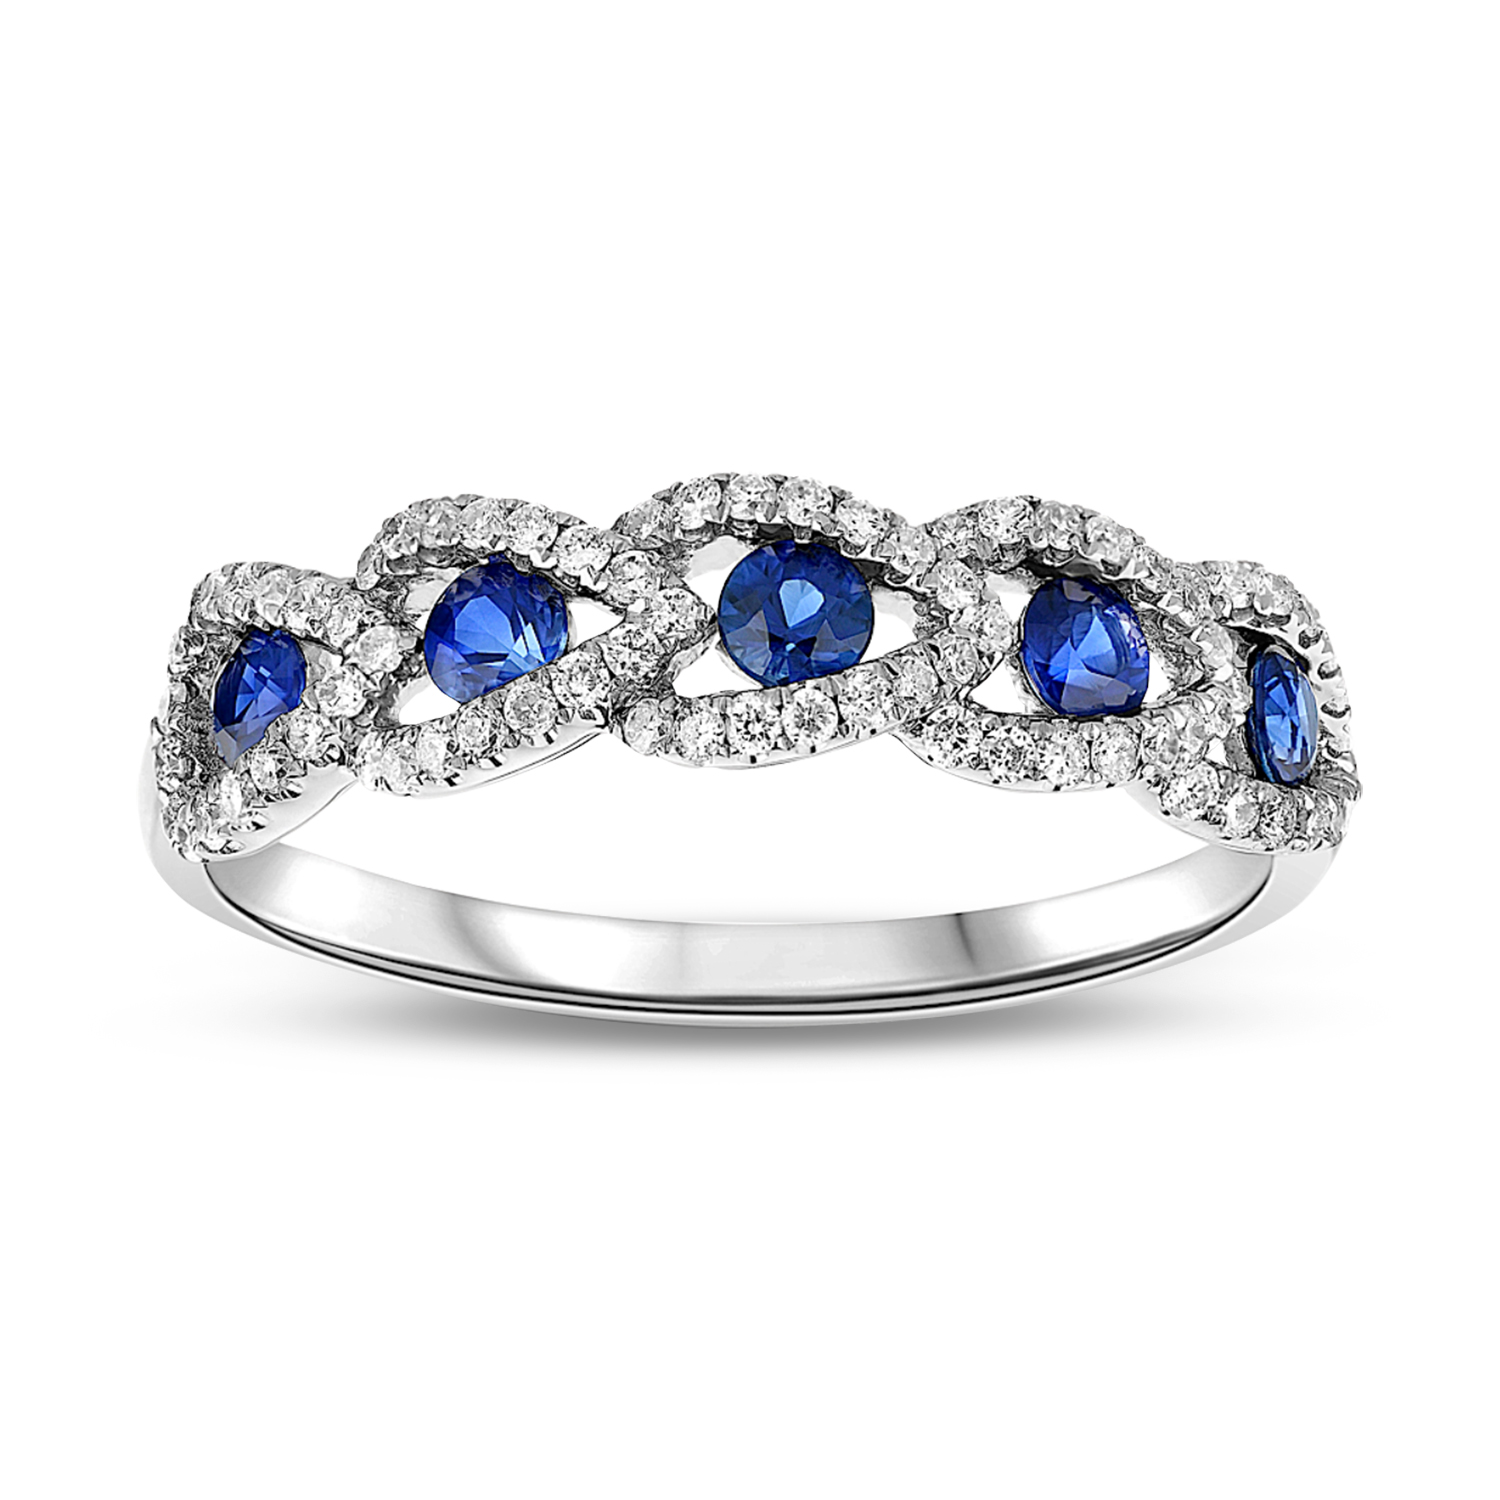 View 0.70ctw Diamond and Sapphire Wedding Band in 18k Gold